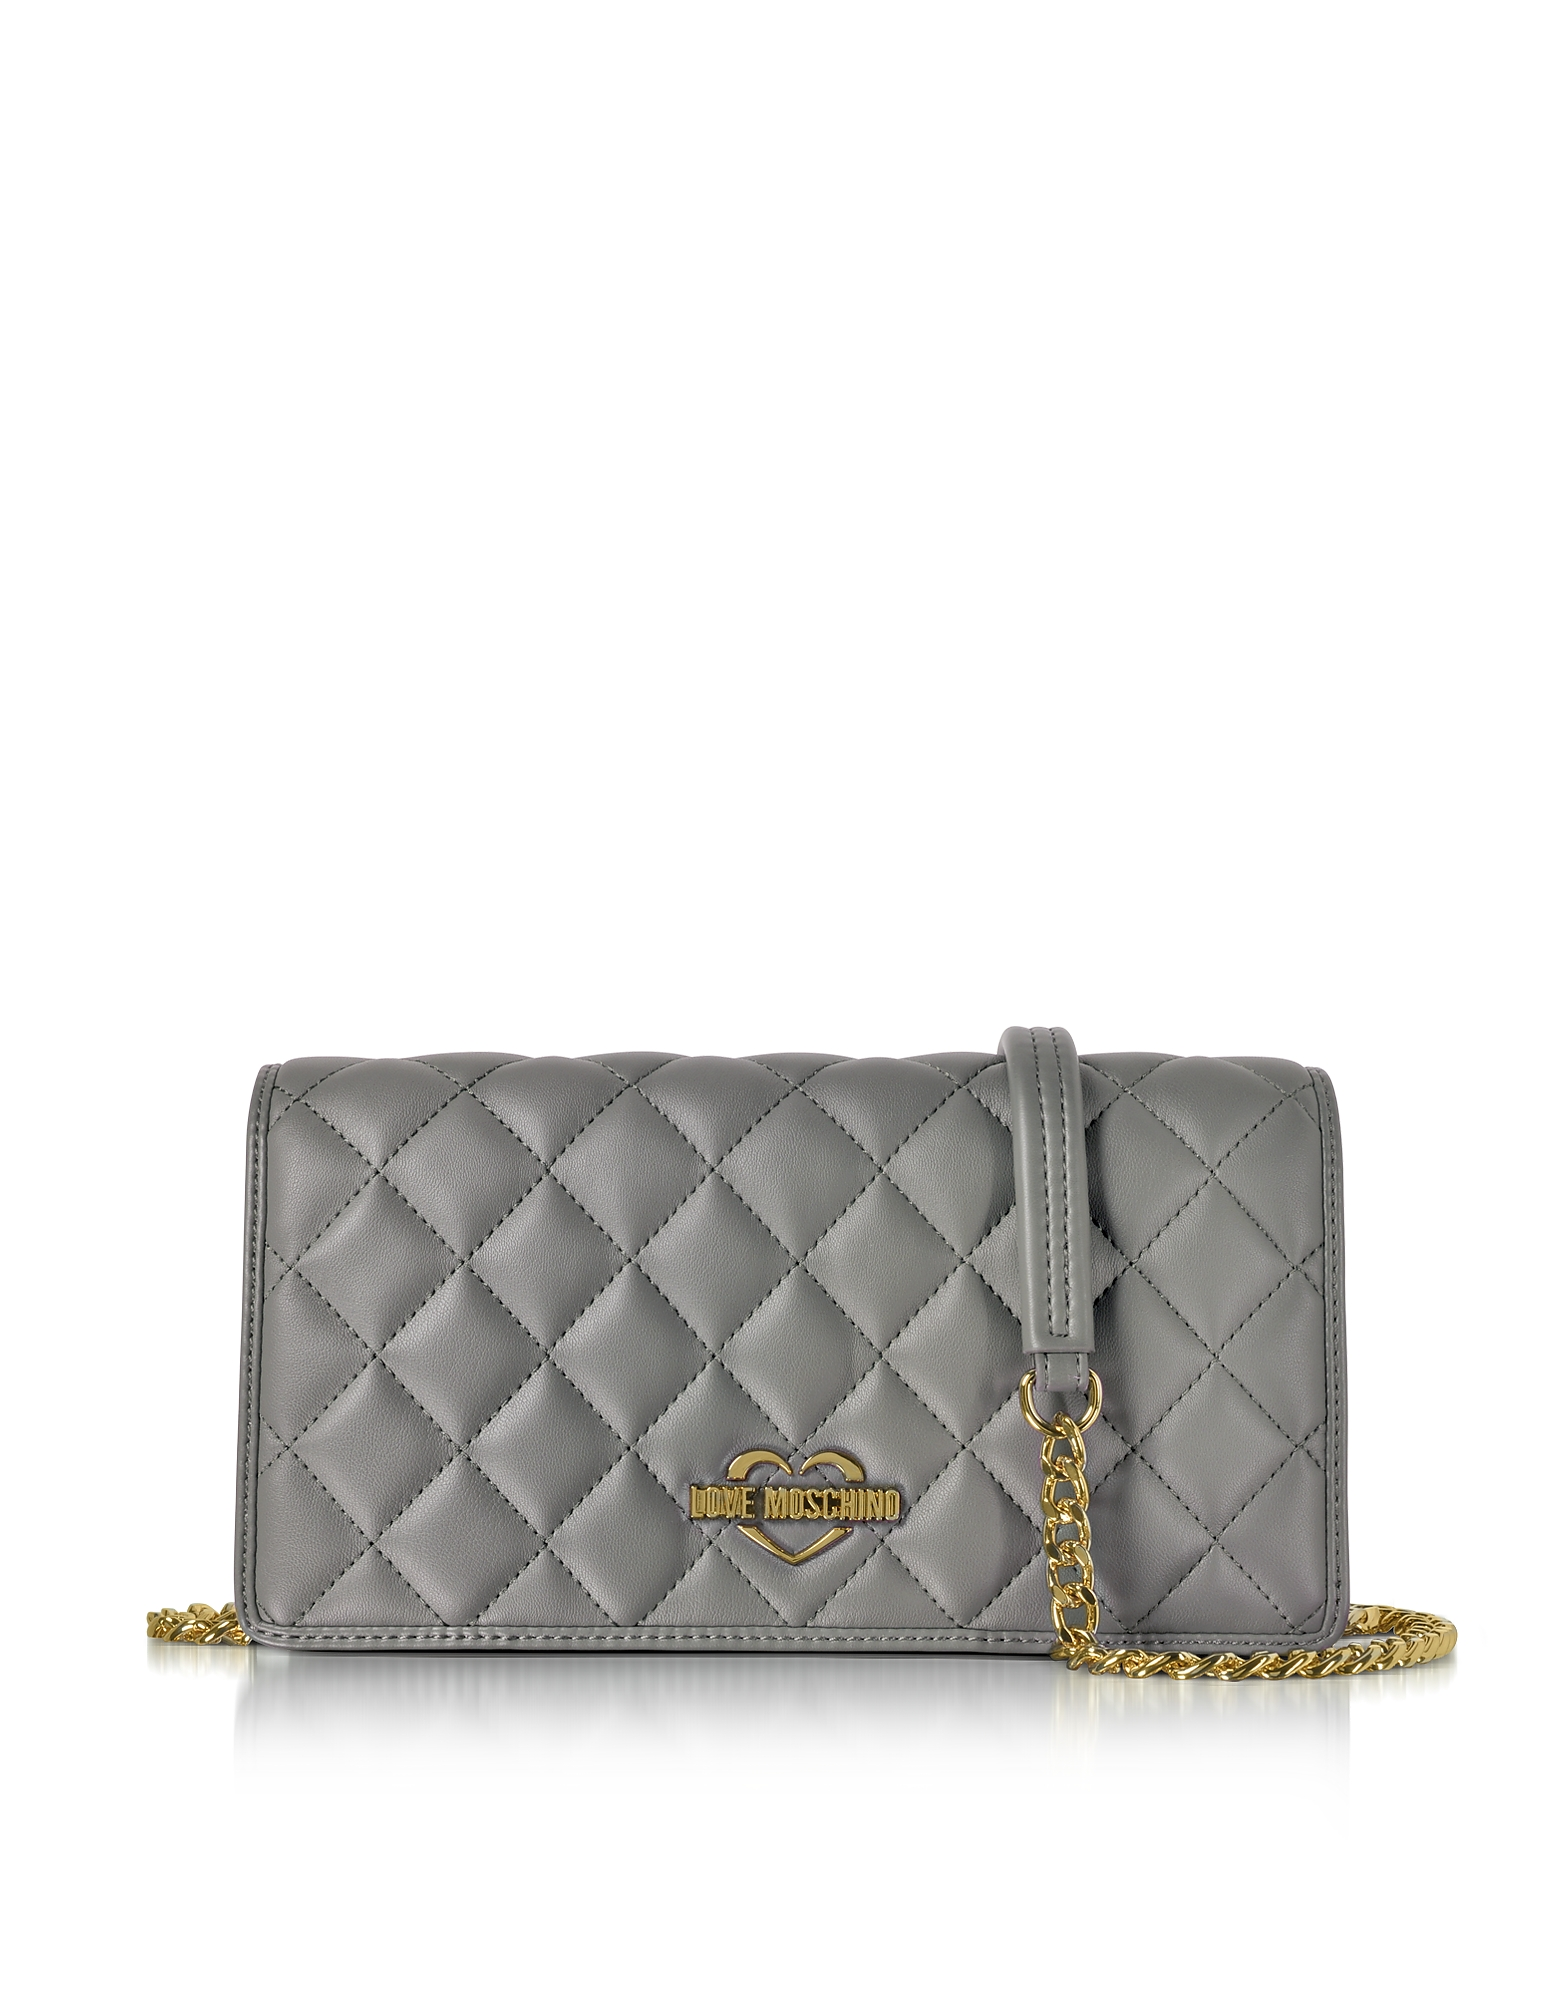 Love Moschino Handbags, Grey Superquilted Eco-Leather Clutch w/Shoulder Strap